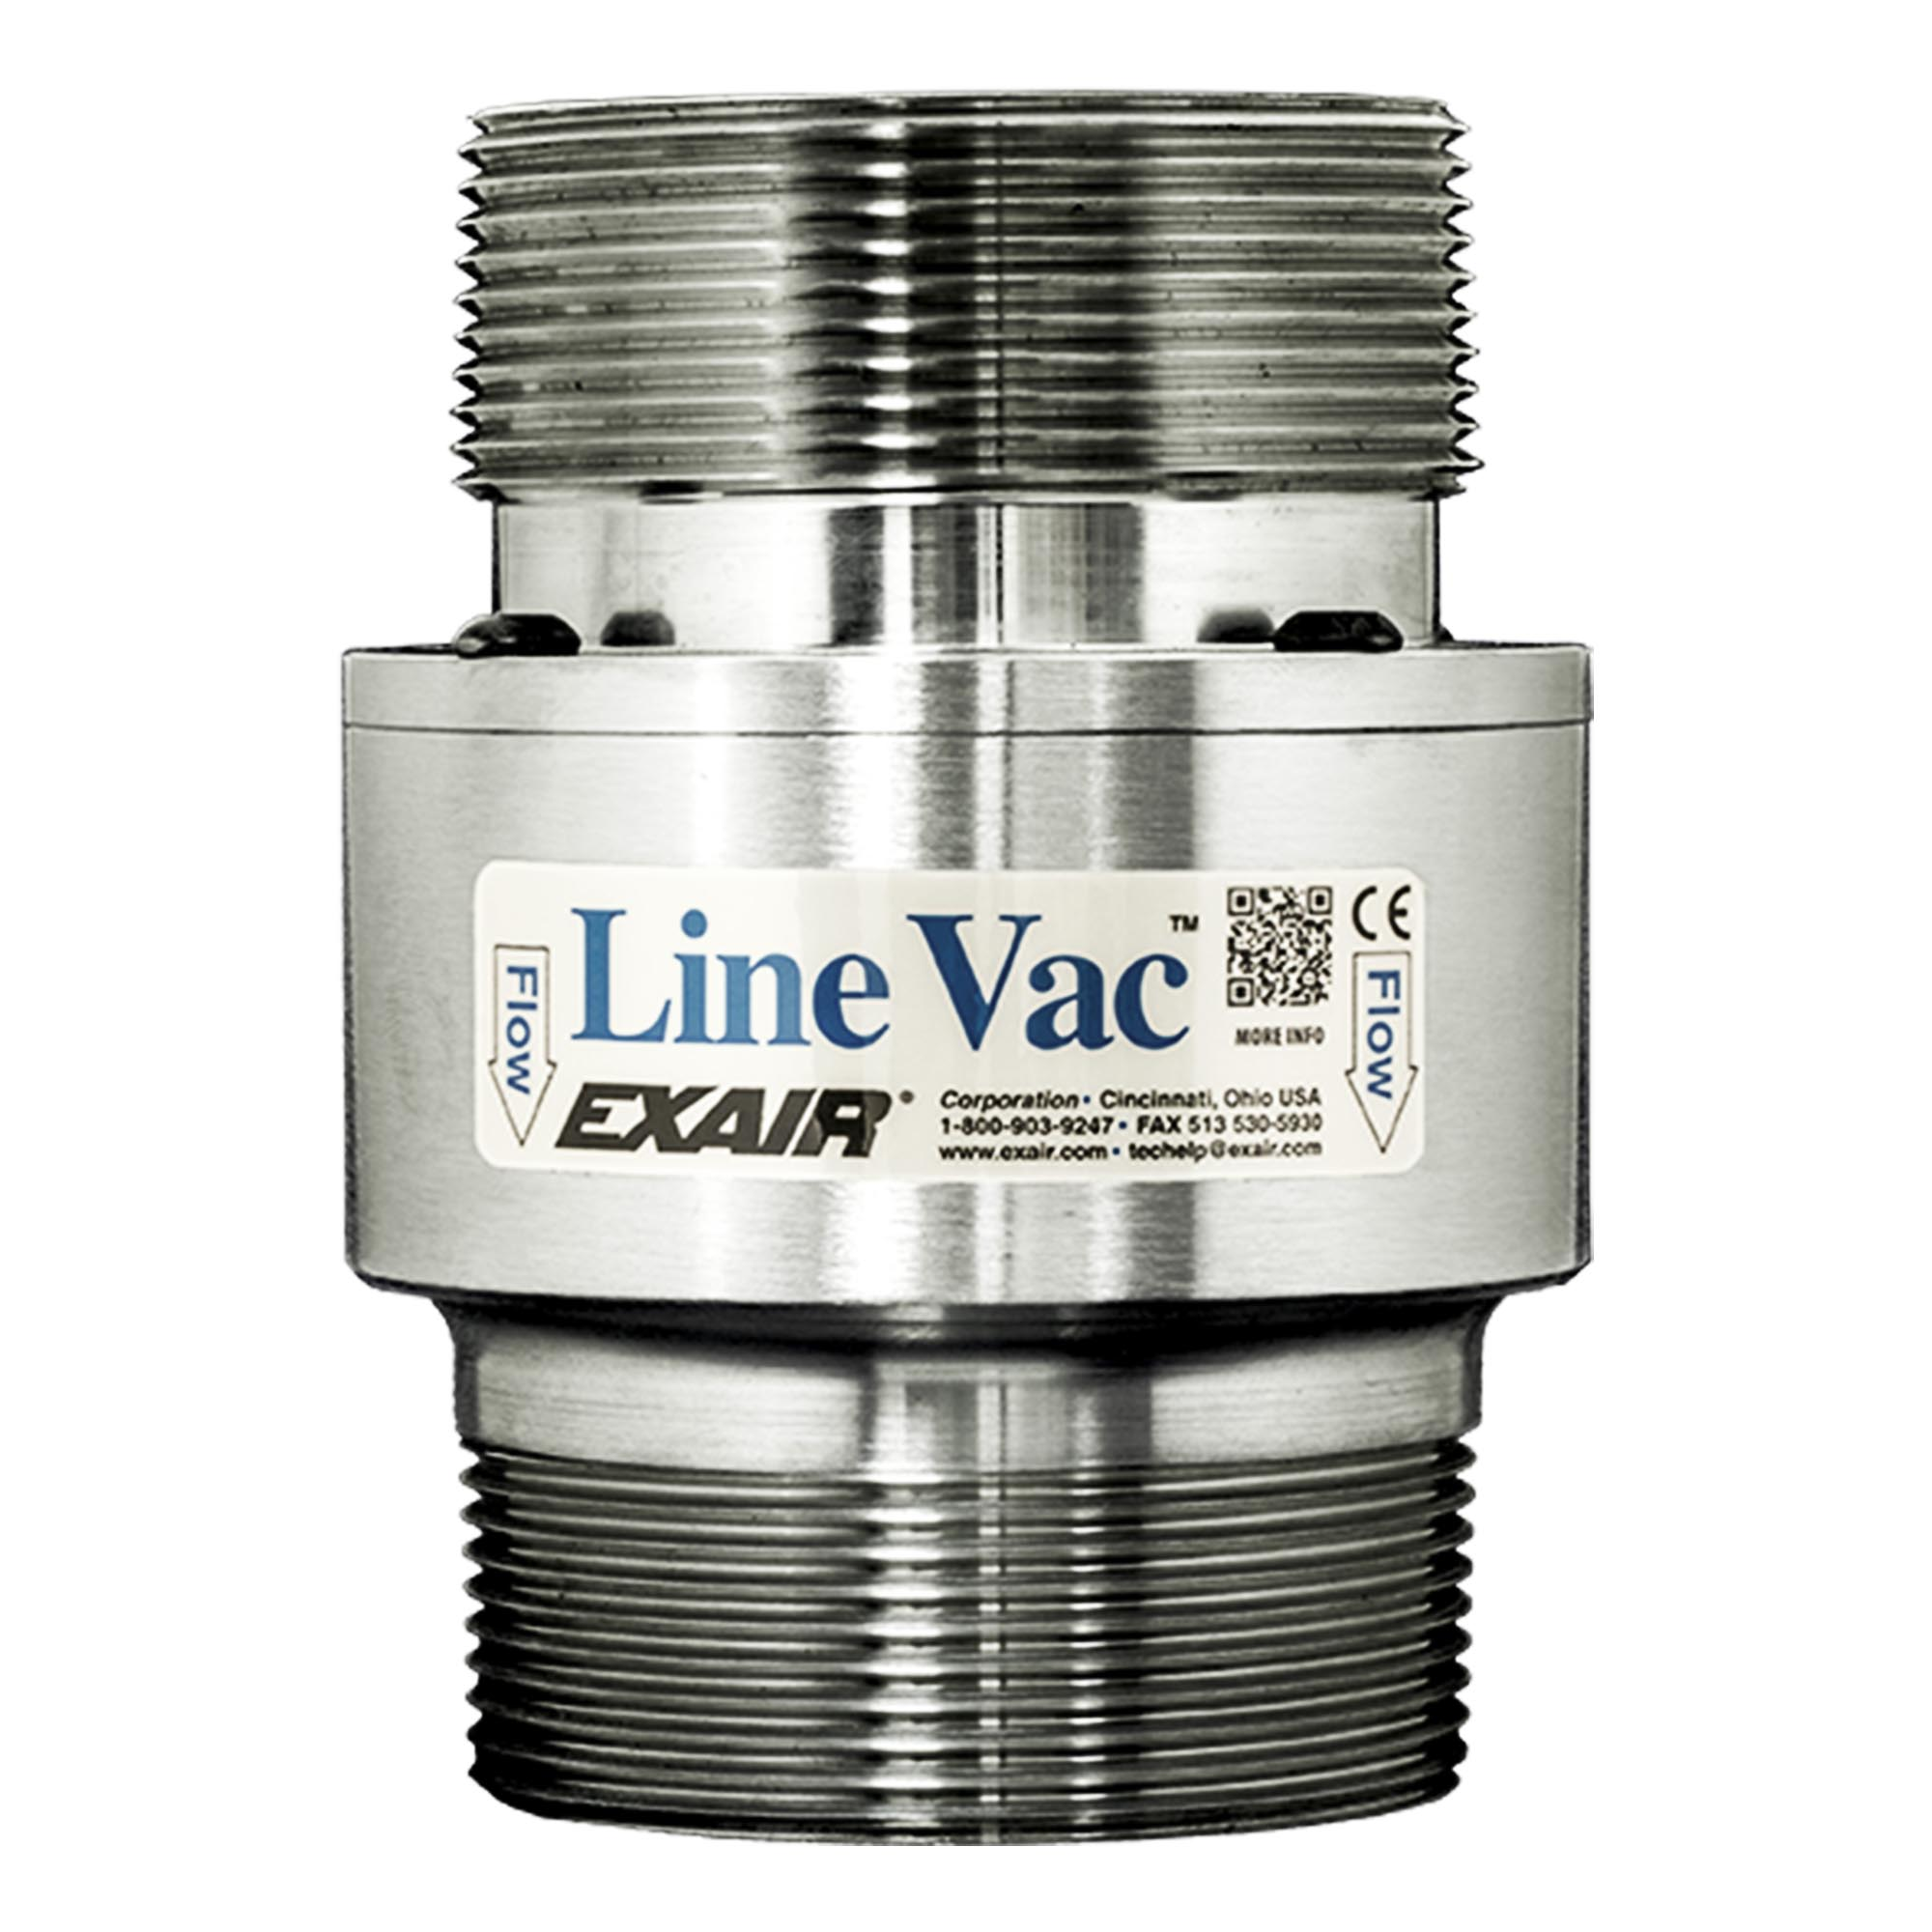 Model 141300 3 NPT St. St. Threaded Line Vac